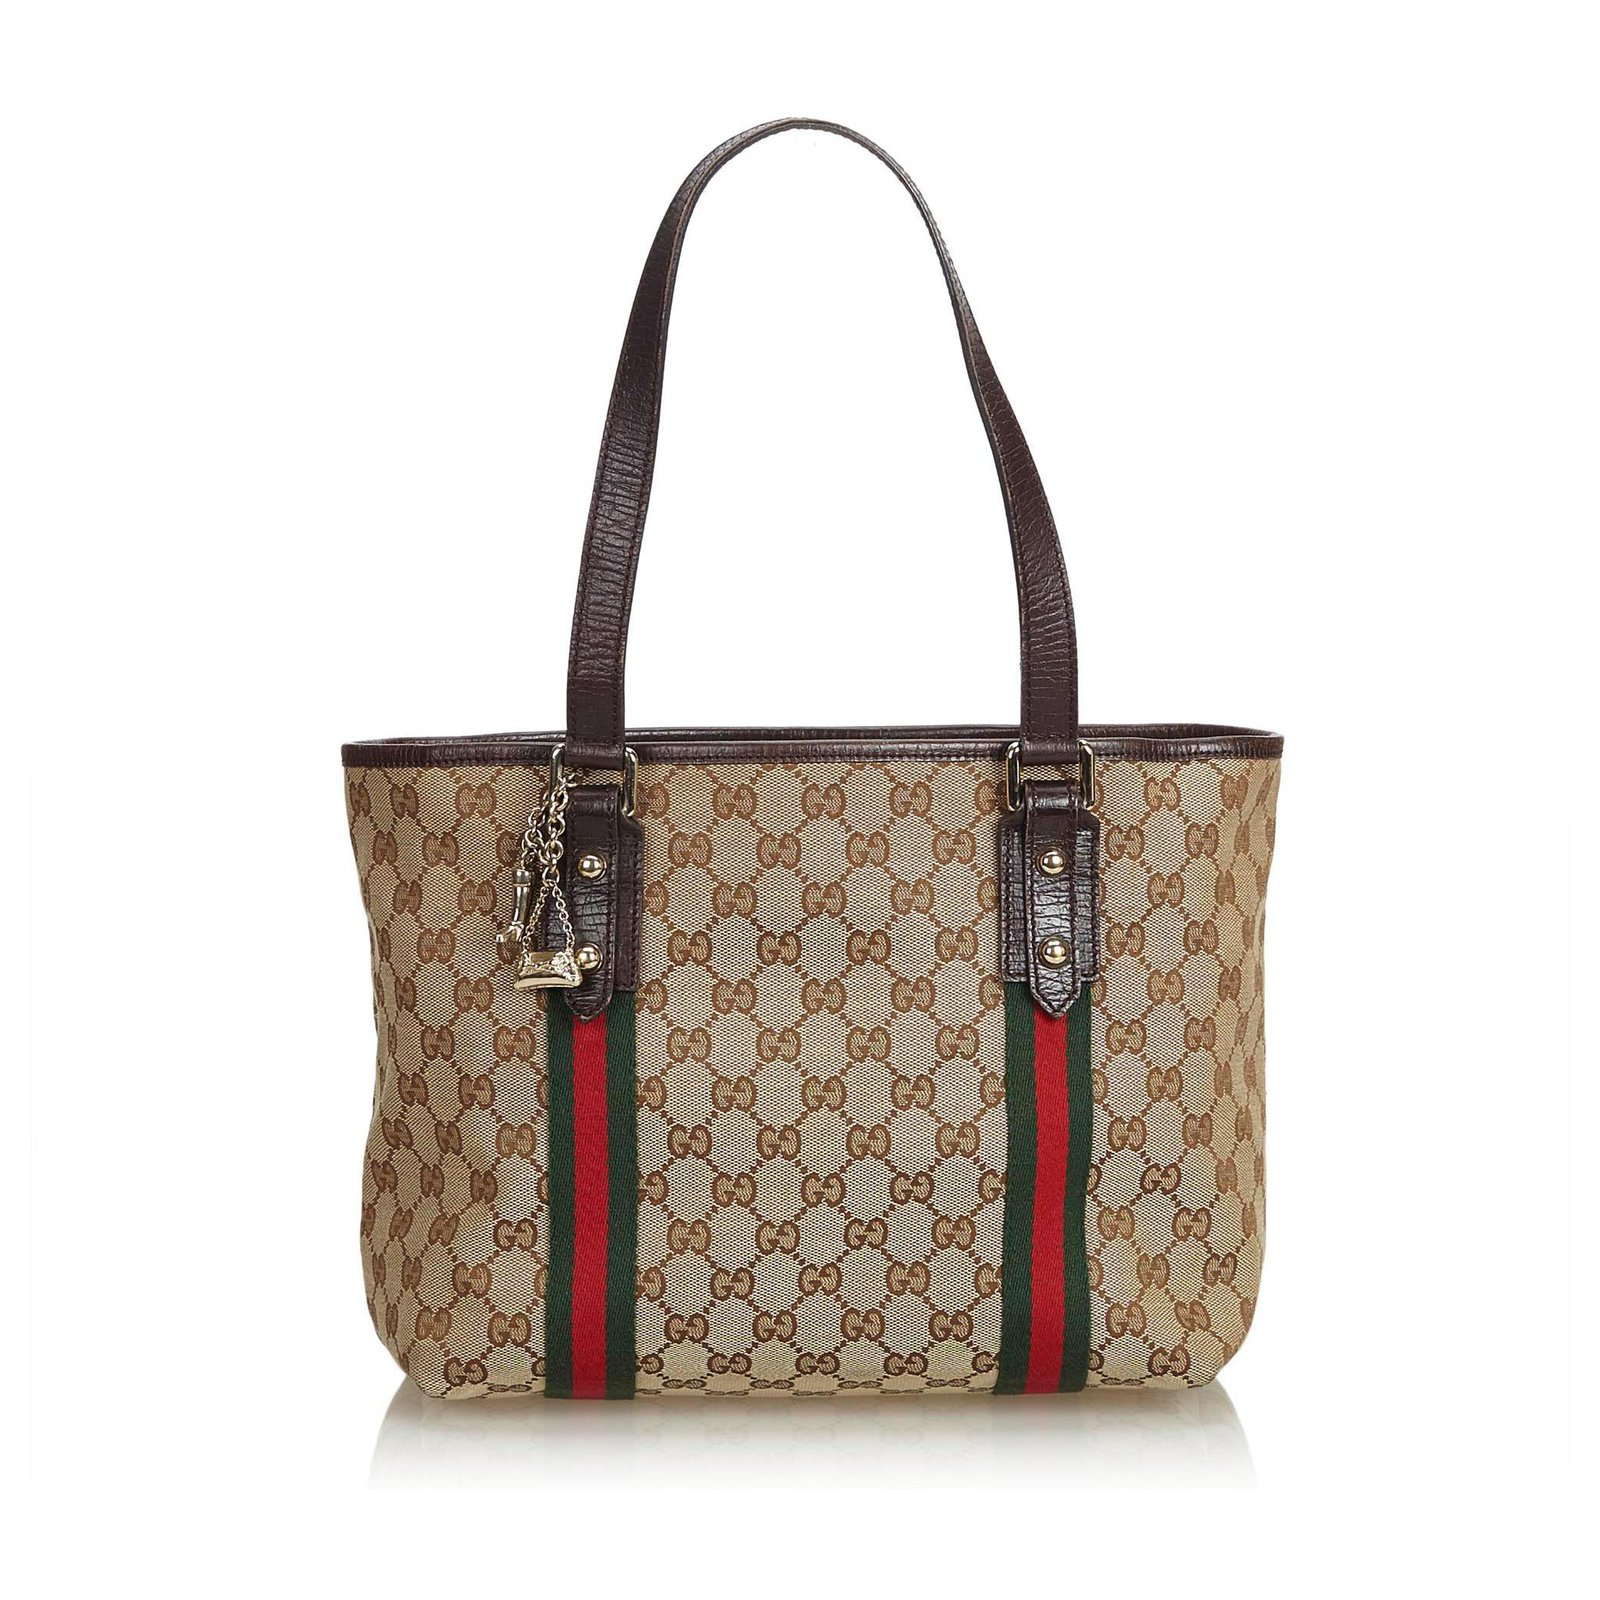 c27da1a09ee87d Gucci Gucci Brown GG Jacquard Jolicoeur Tote Bag Totes Leather,Other,Cloth  Brown,